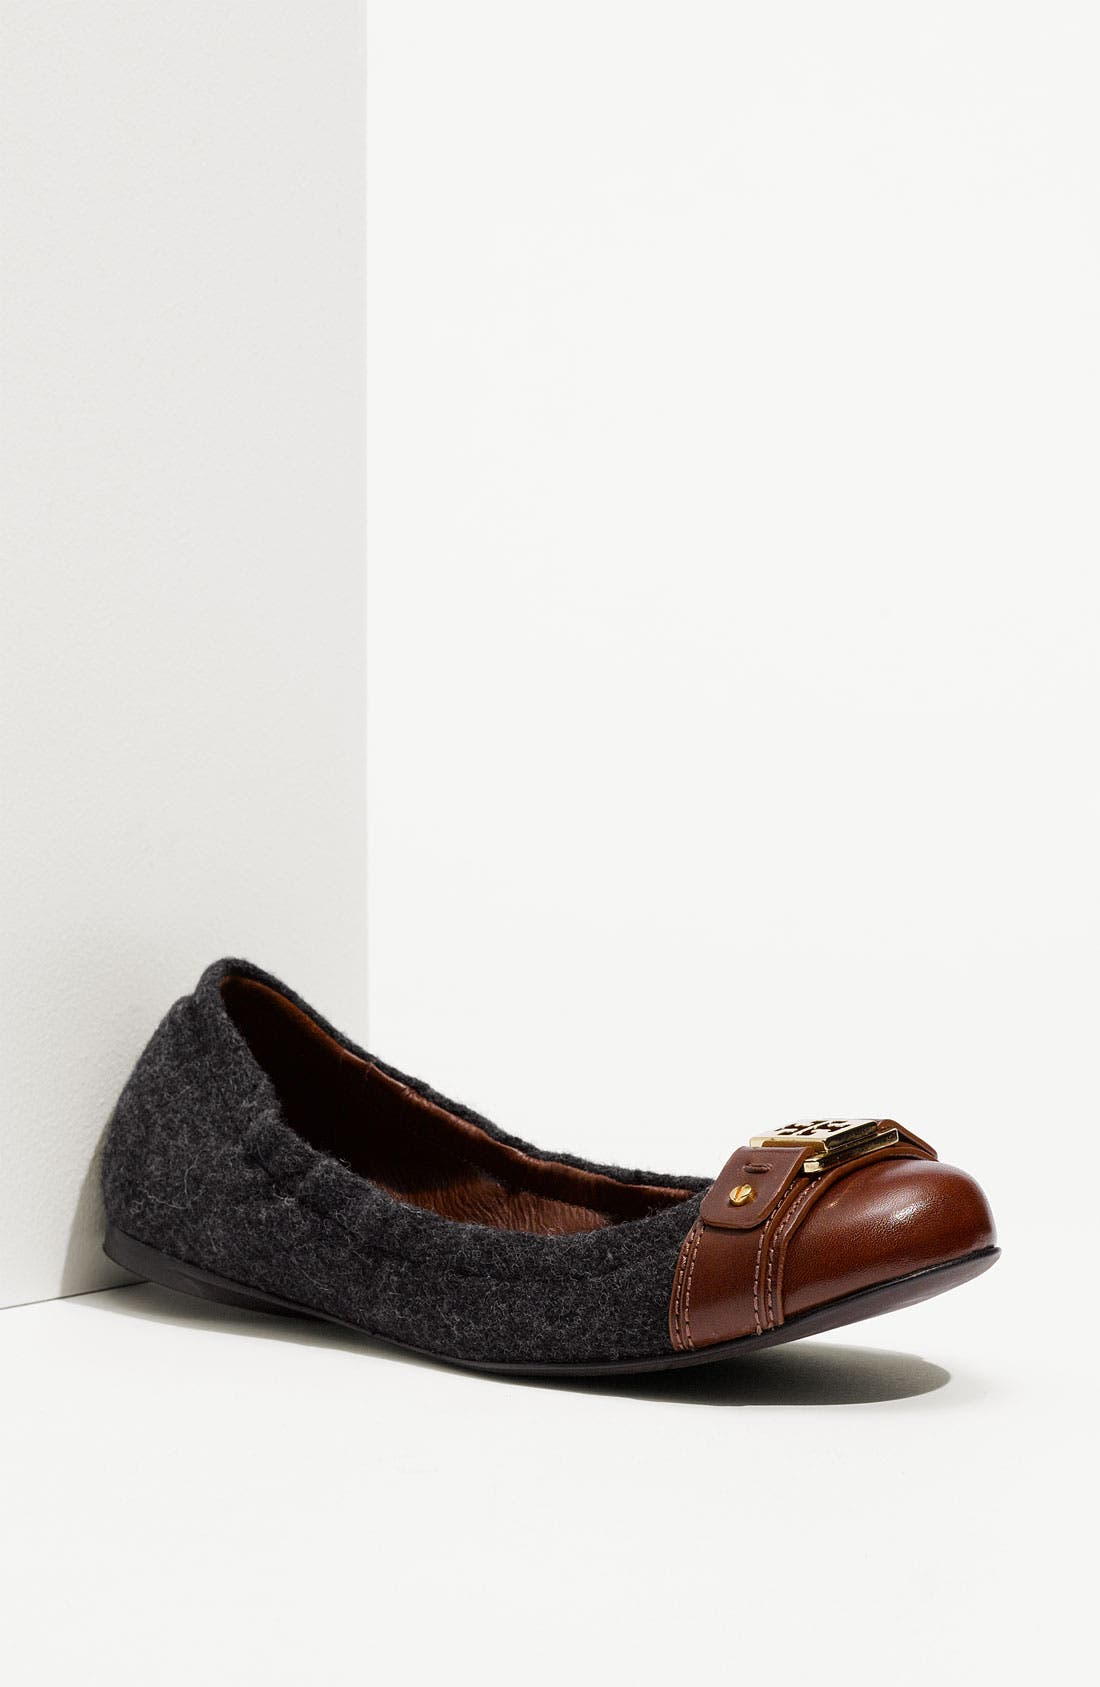 Alternate Image 1 Selected - Tory Burch 'Ambrose' Cap Toe Flannel Flat (Nordstrom Exclusive)